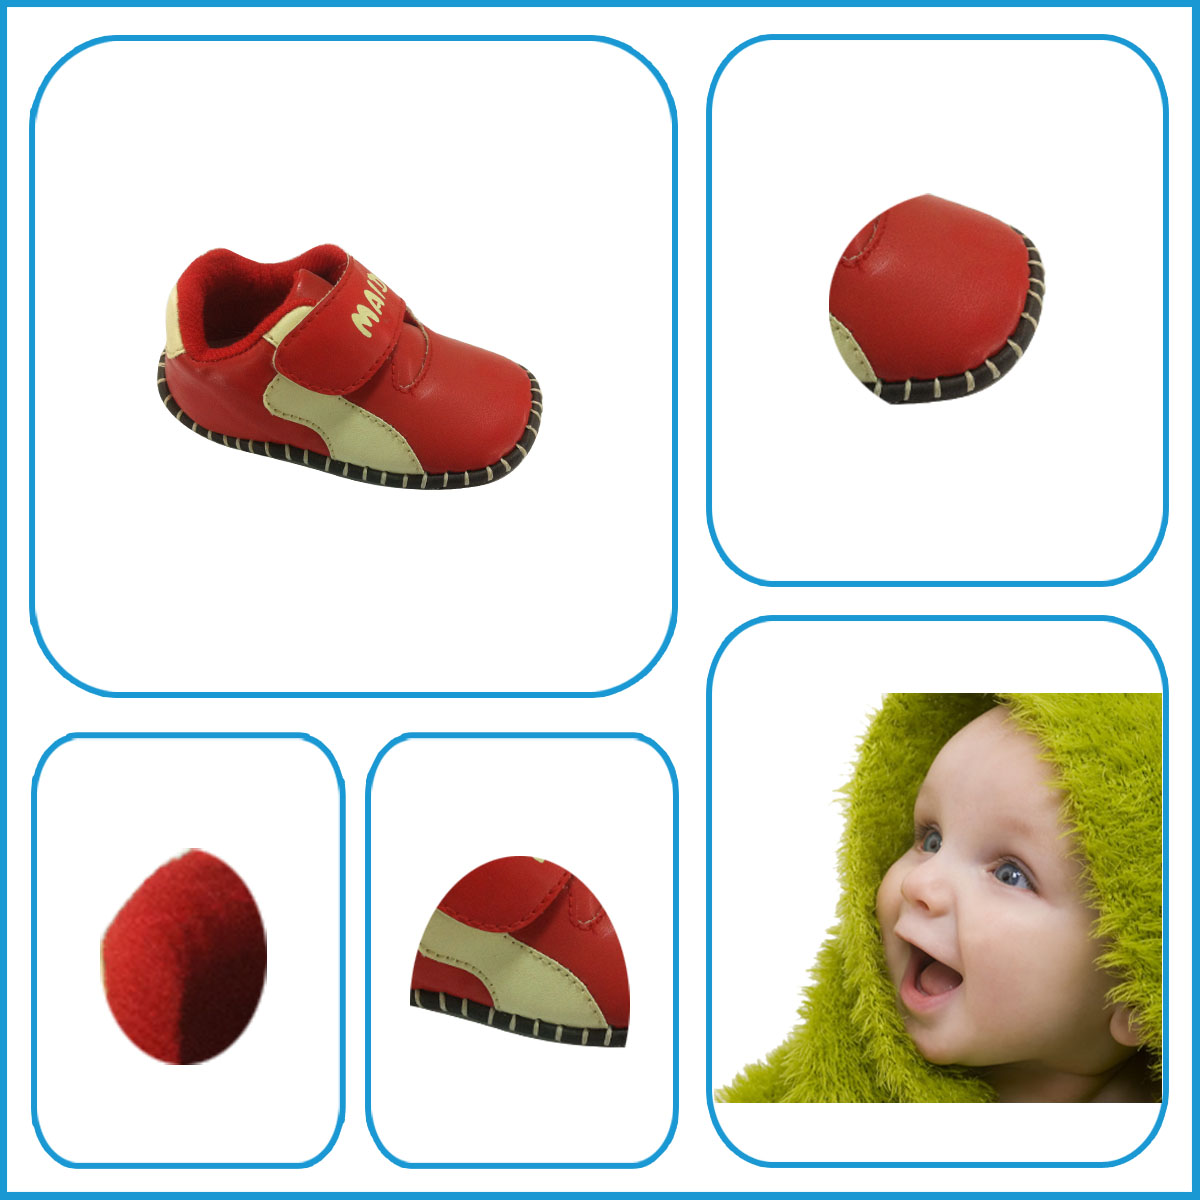 Hot Selling Pu Breathale Red Kids Shoes with High Quality Rubber Sole Genuine Leather Kids Shoes from China